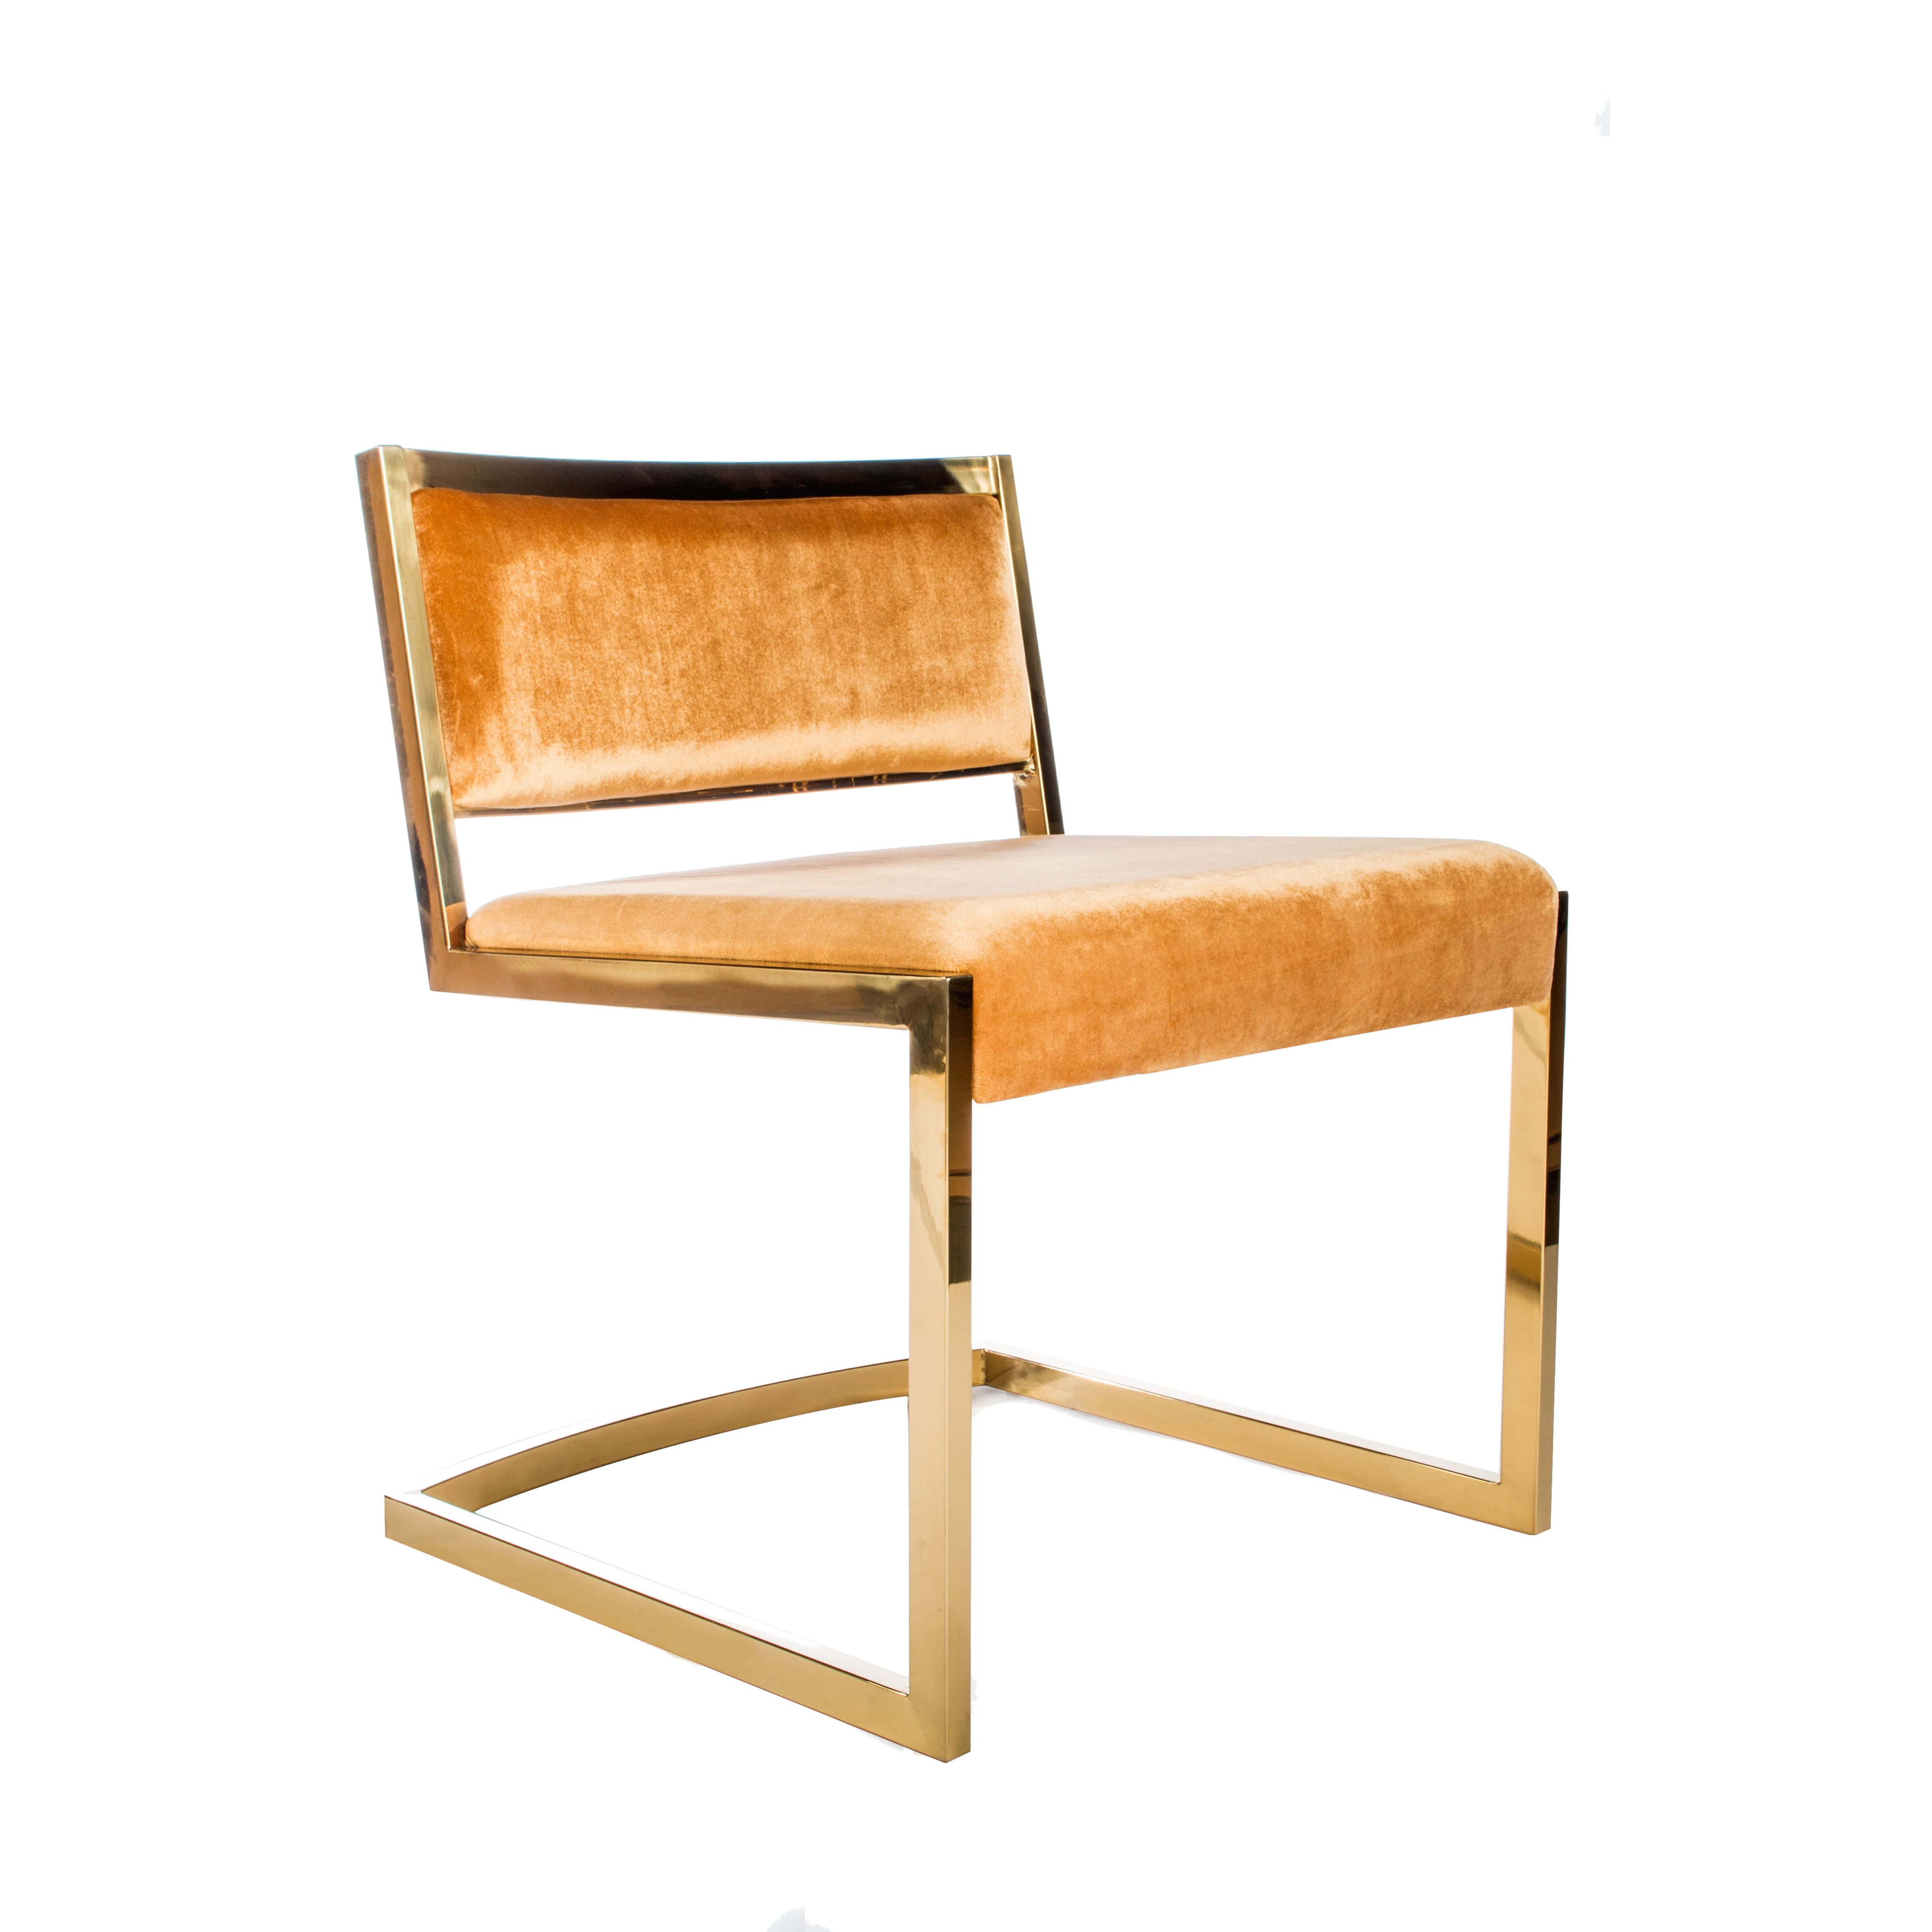 Bradley Gold Dining Chair | Dining chairs, Dining and Room